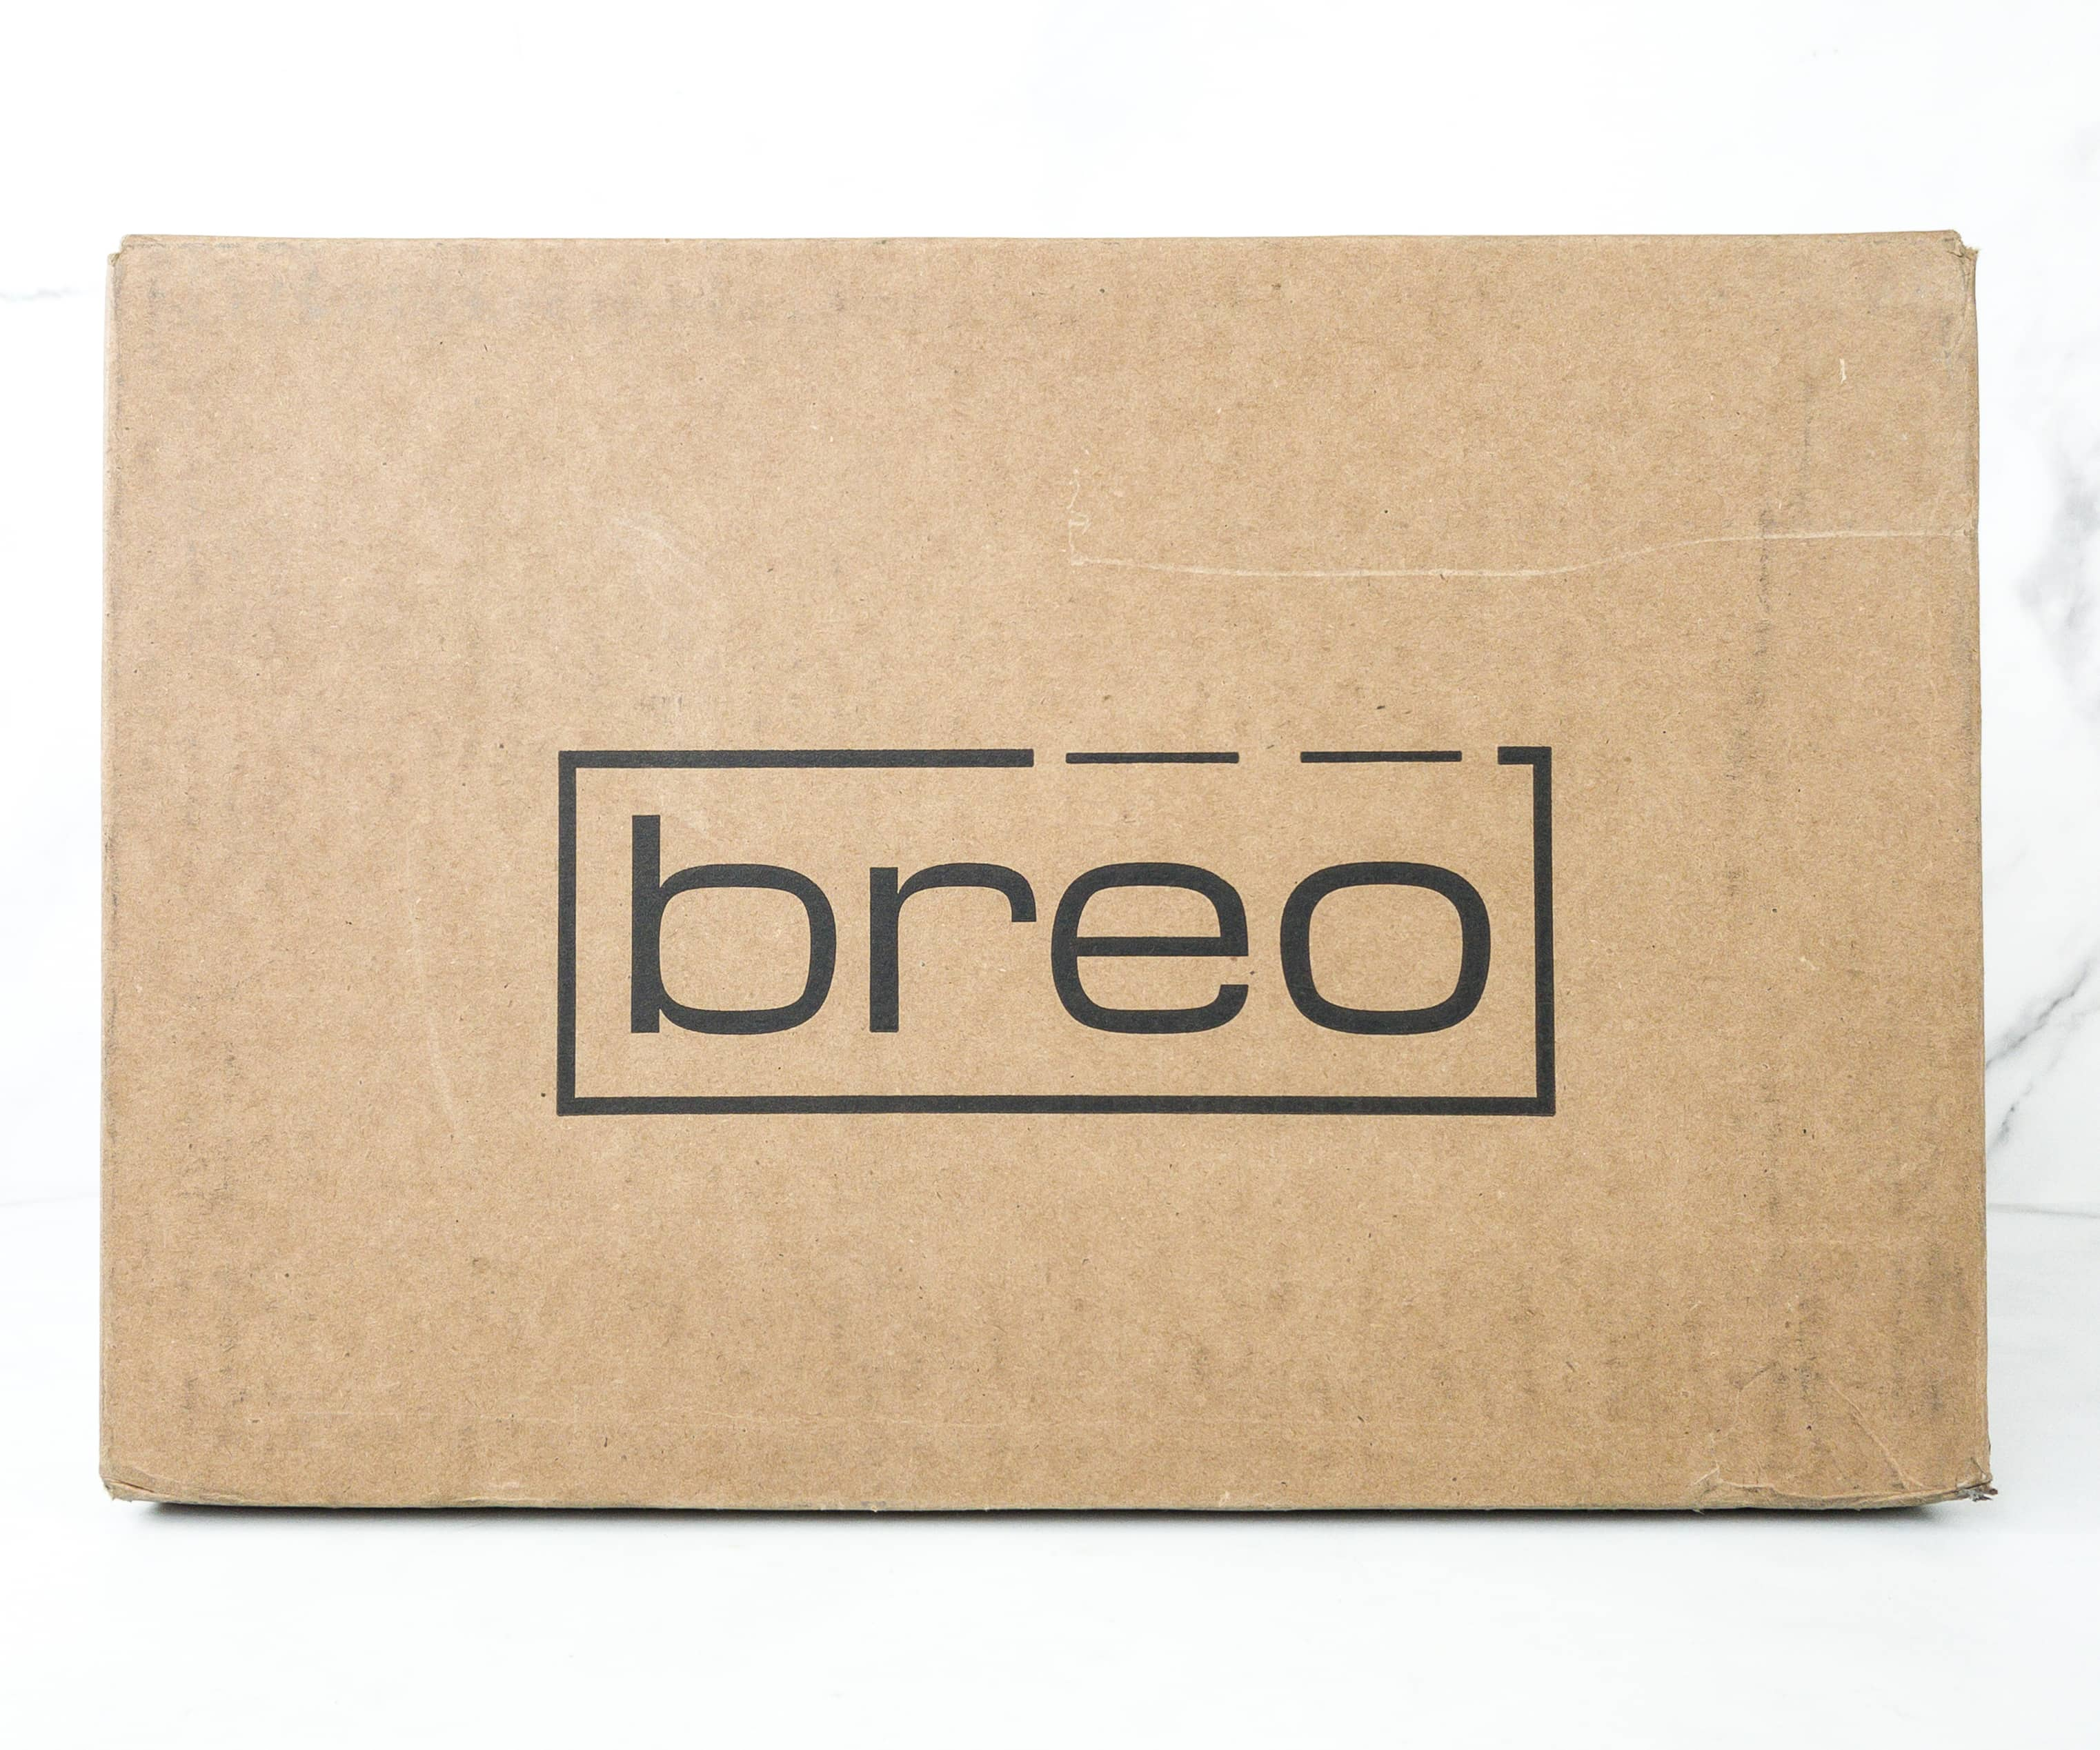 Breo Box Subscription Box Review + Coupon – Fall 2019